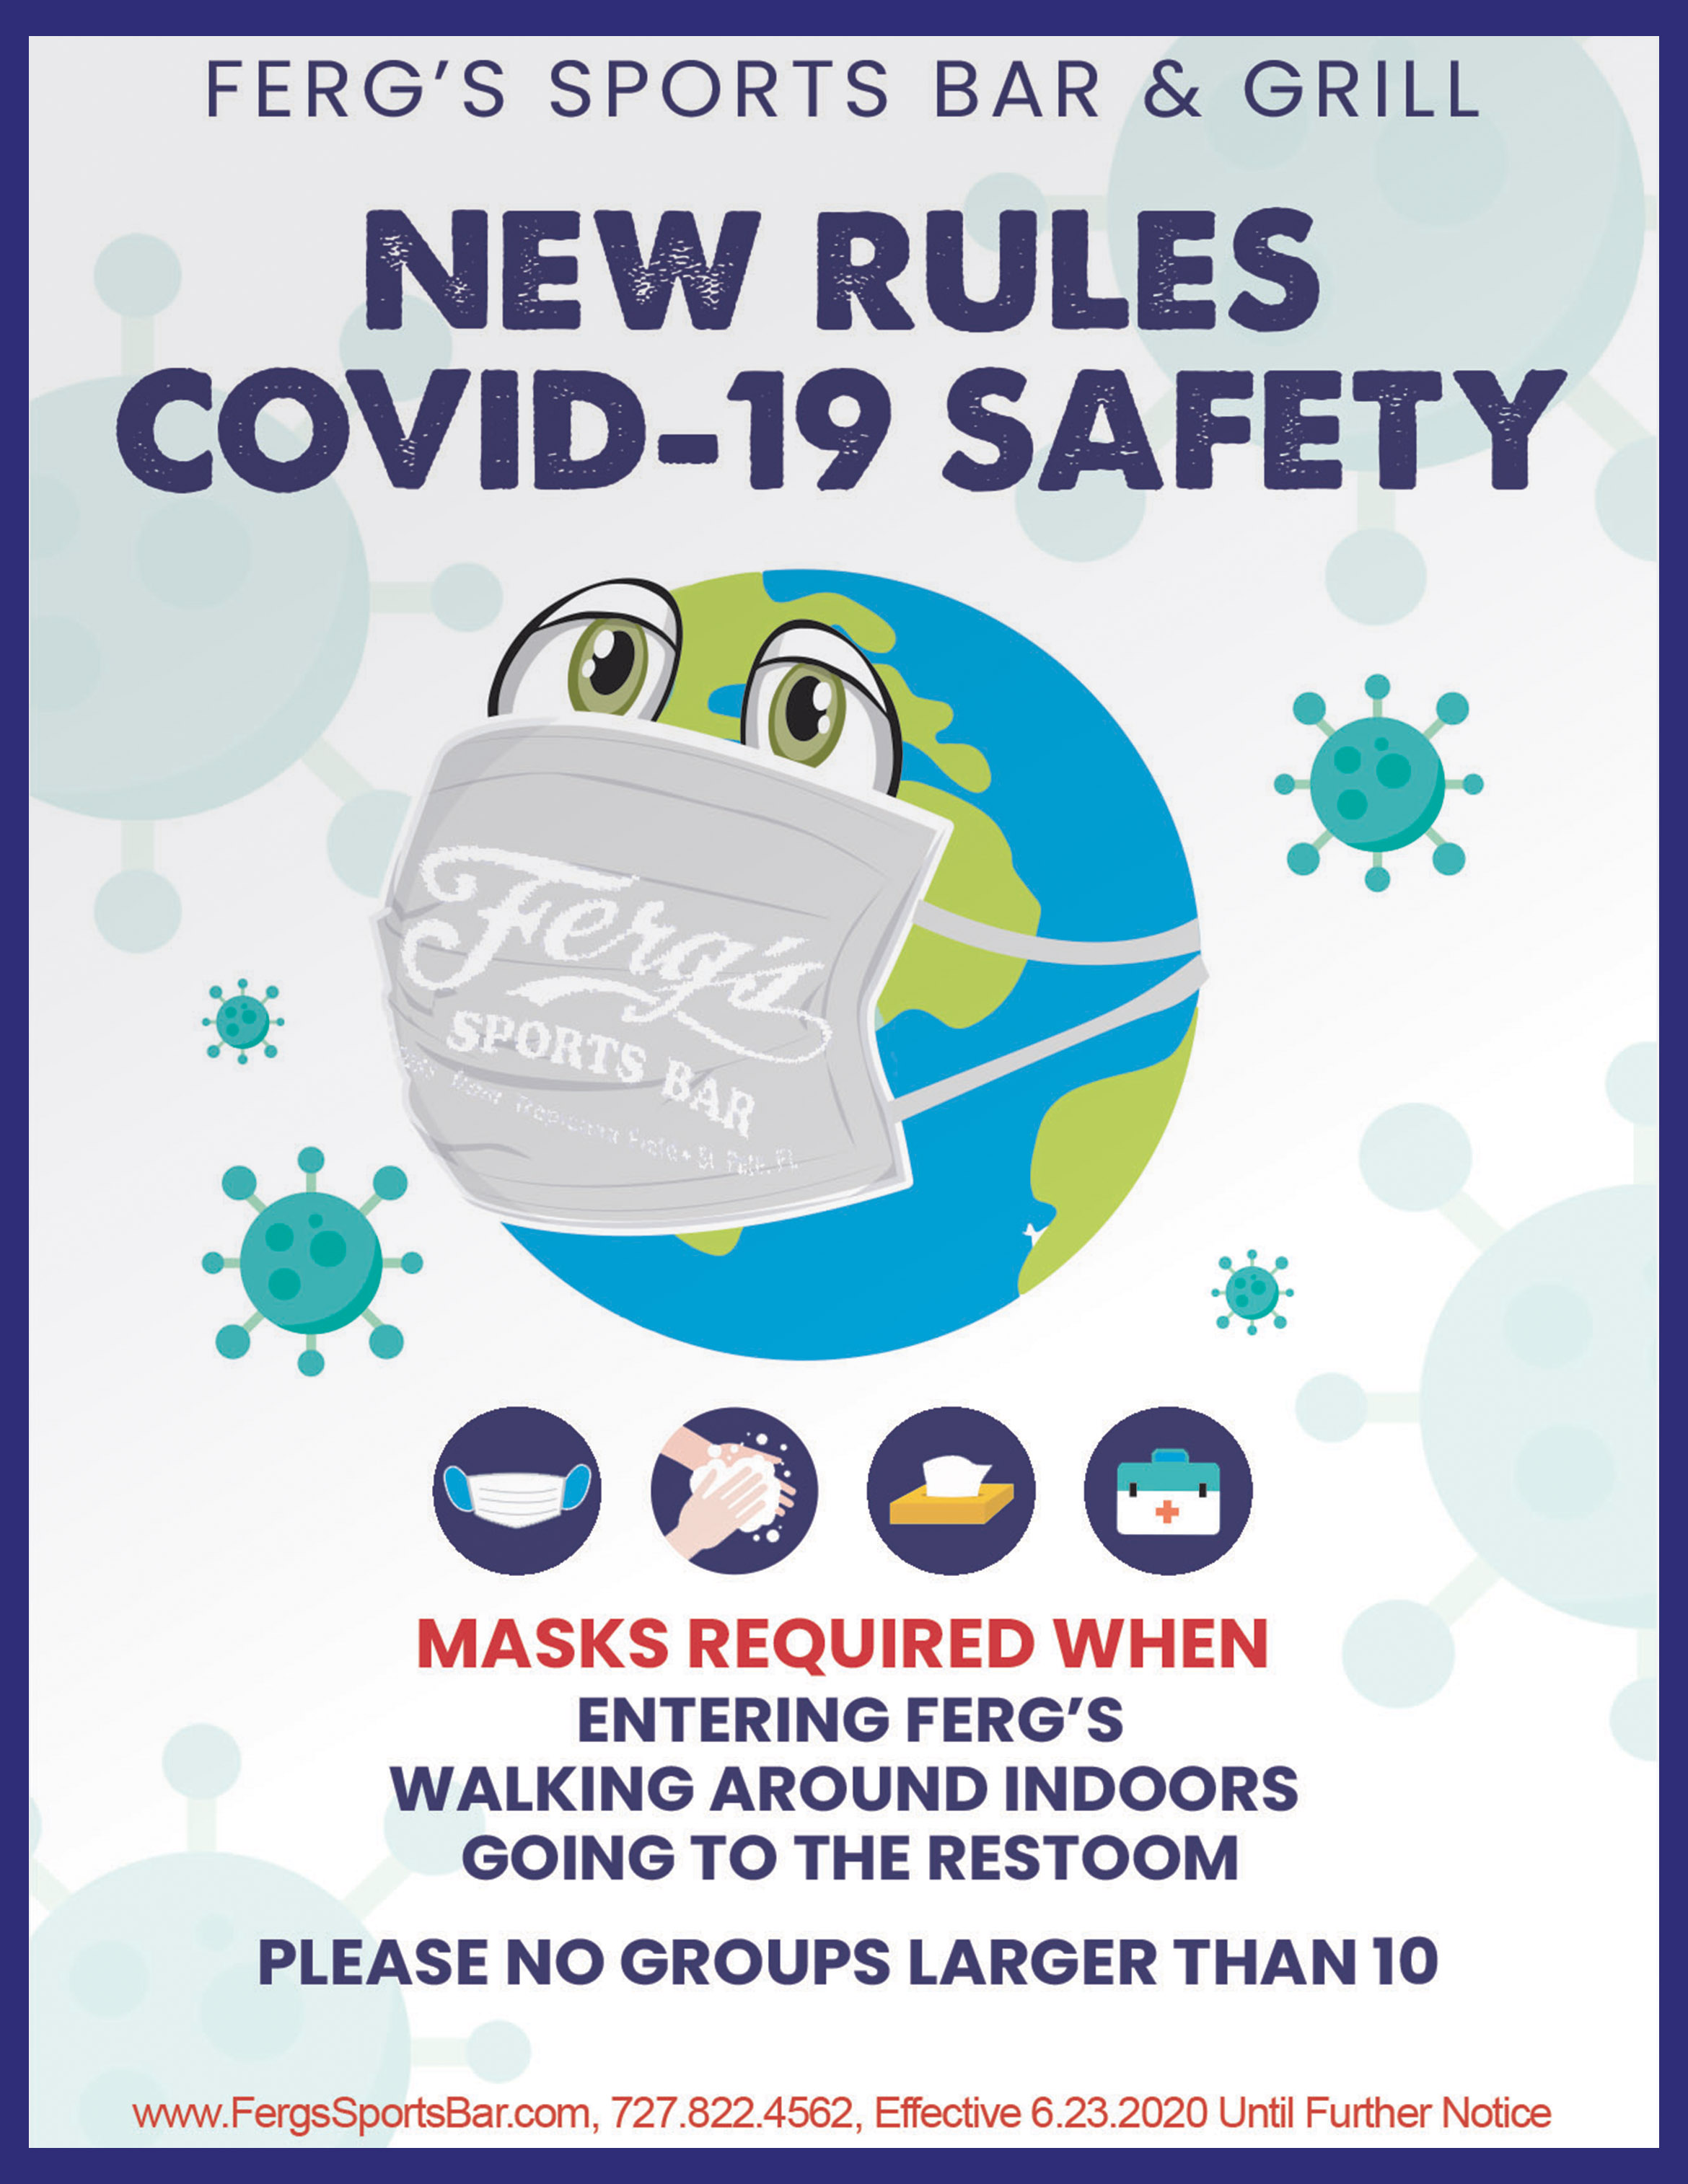 New COVID-19 Safety Rules